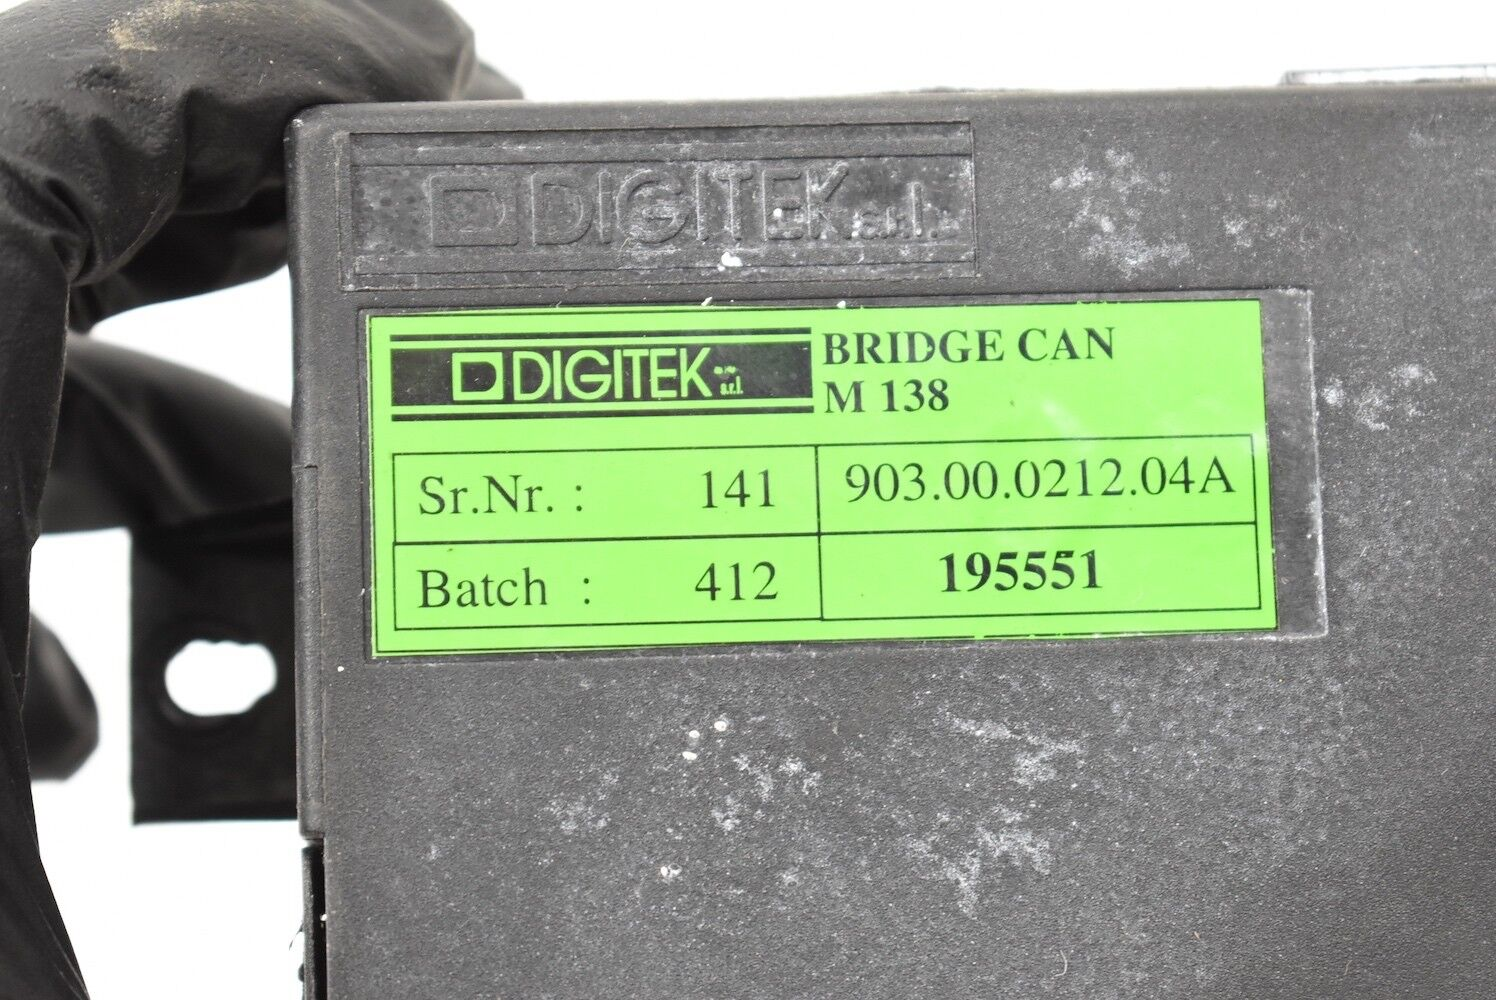 Used Maserati Switches And Controls For Sale Page 15 Tc Fuse Box Location 2002 M128 Gt Bridge Can Digitek Control Module Unit